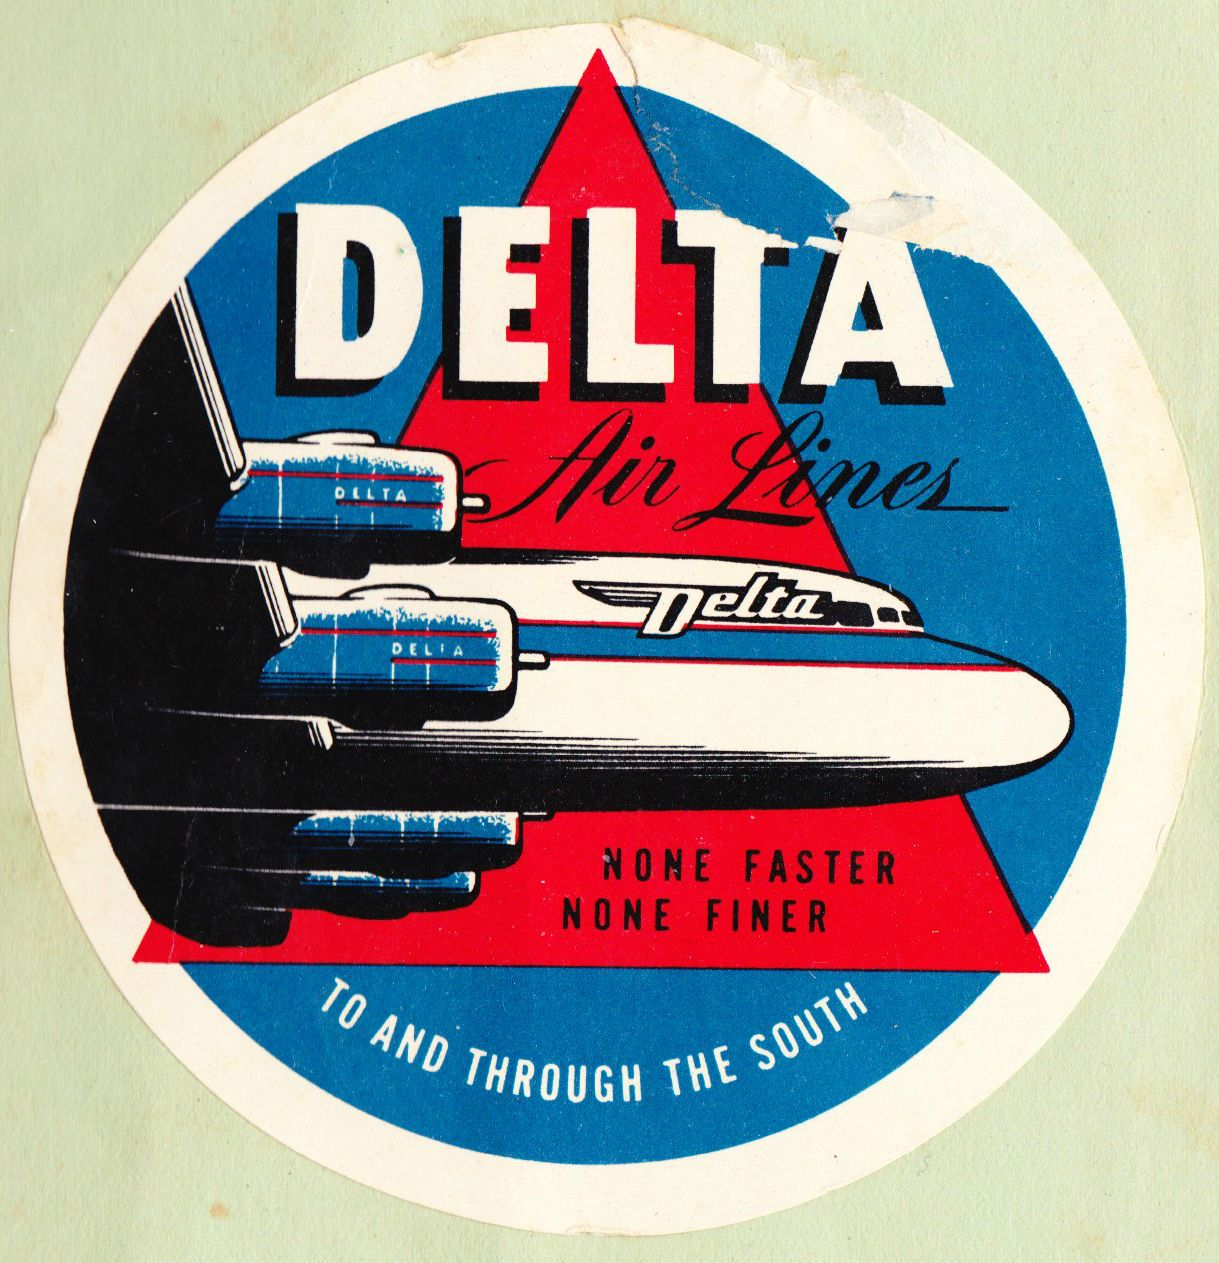 VINTAGE AVIATION AIRLINES cloth PATCH DELTA